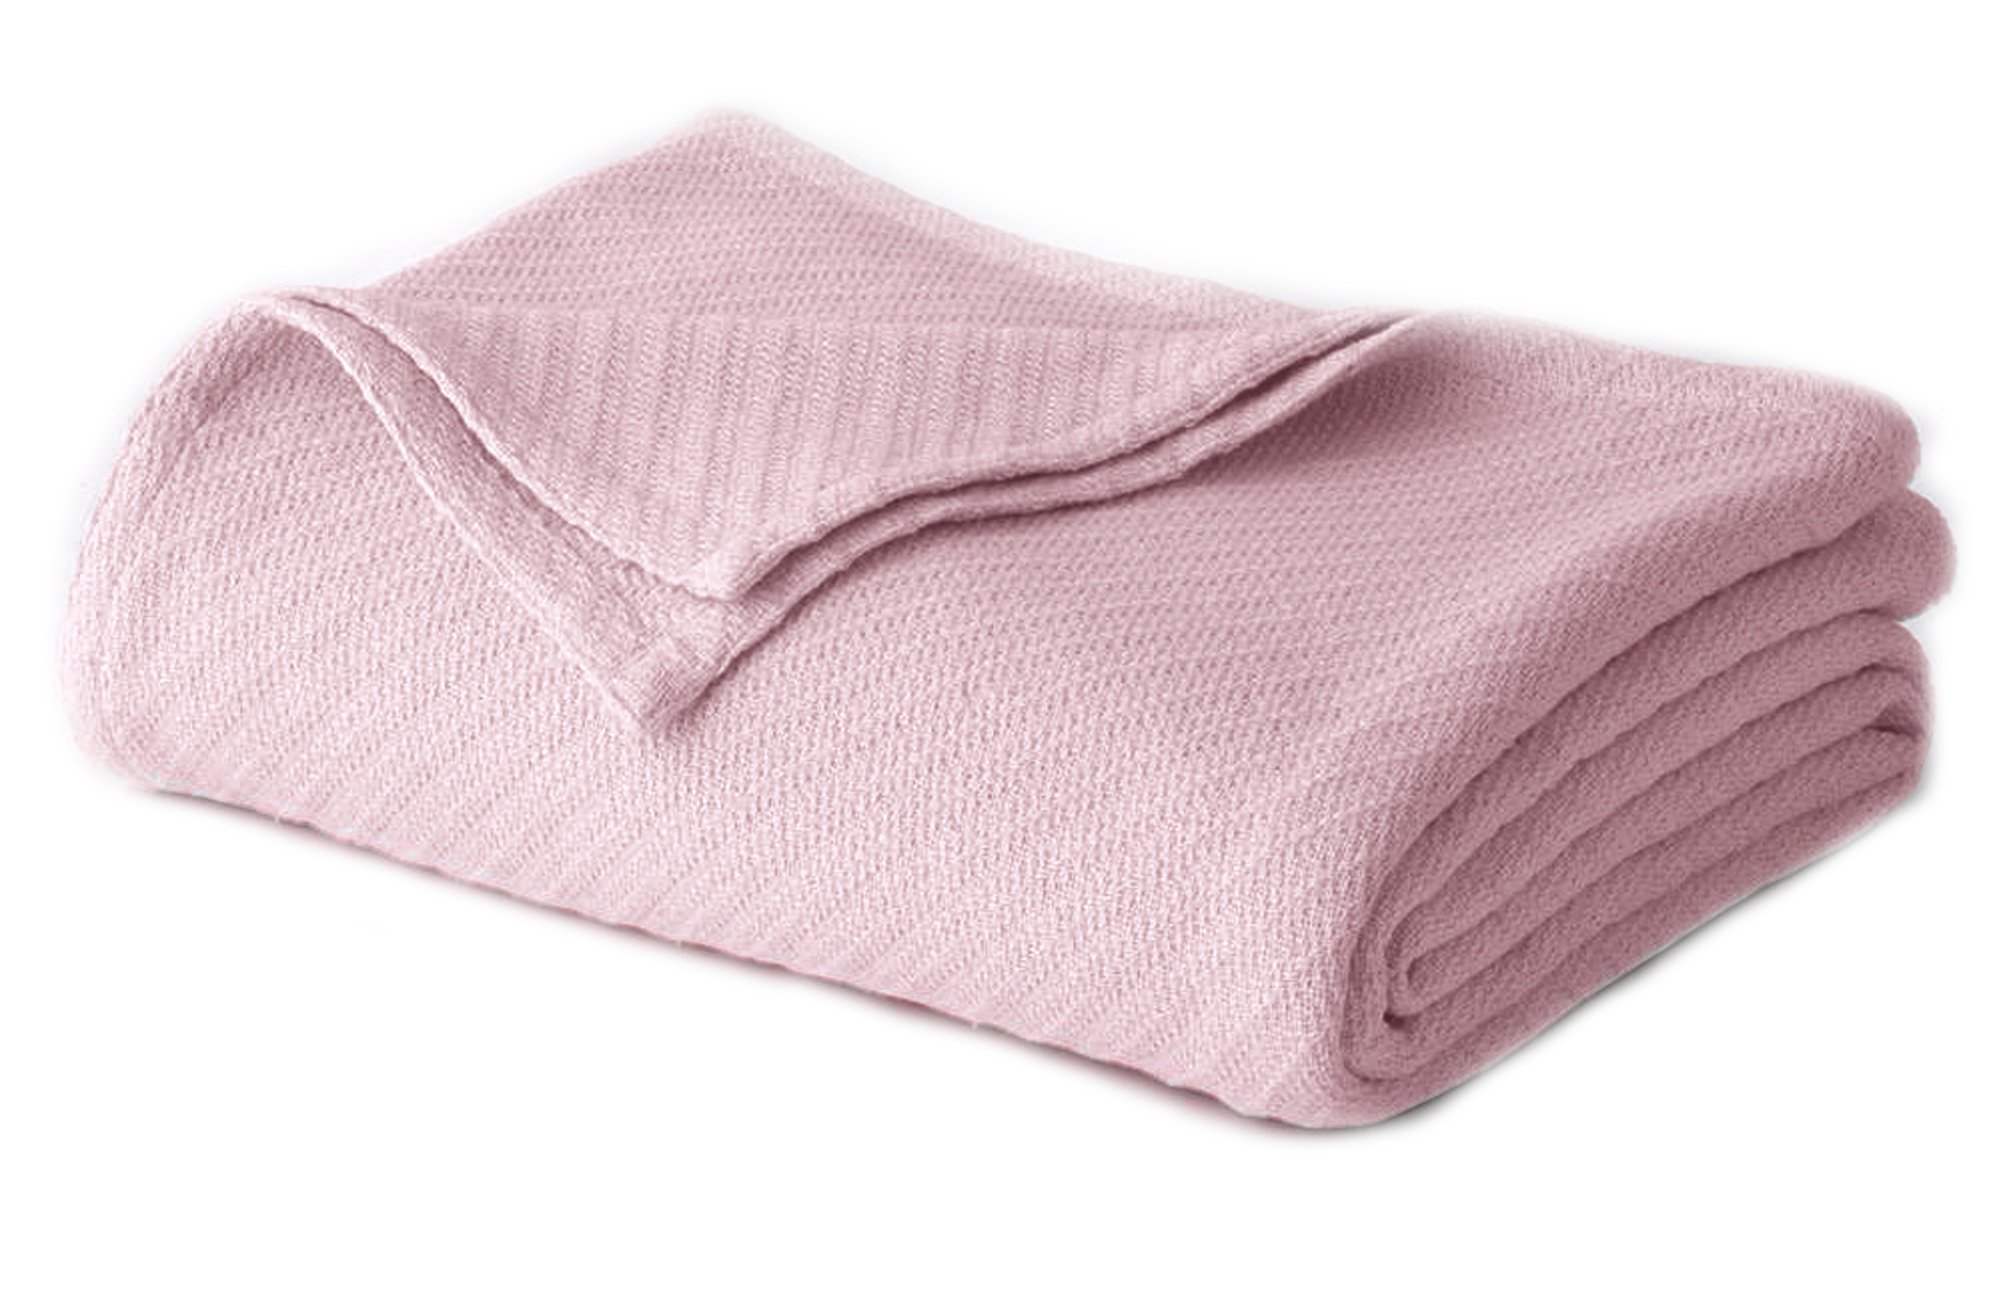 Cotton Craft - 100% Soft Premium Cotton Thermal Blanket - Twin Light Pink - Snuggle in these Super Soft Cozy Cotton Blankets - Perfect for Layering any Bed - Provides Comfort and Warmth for years